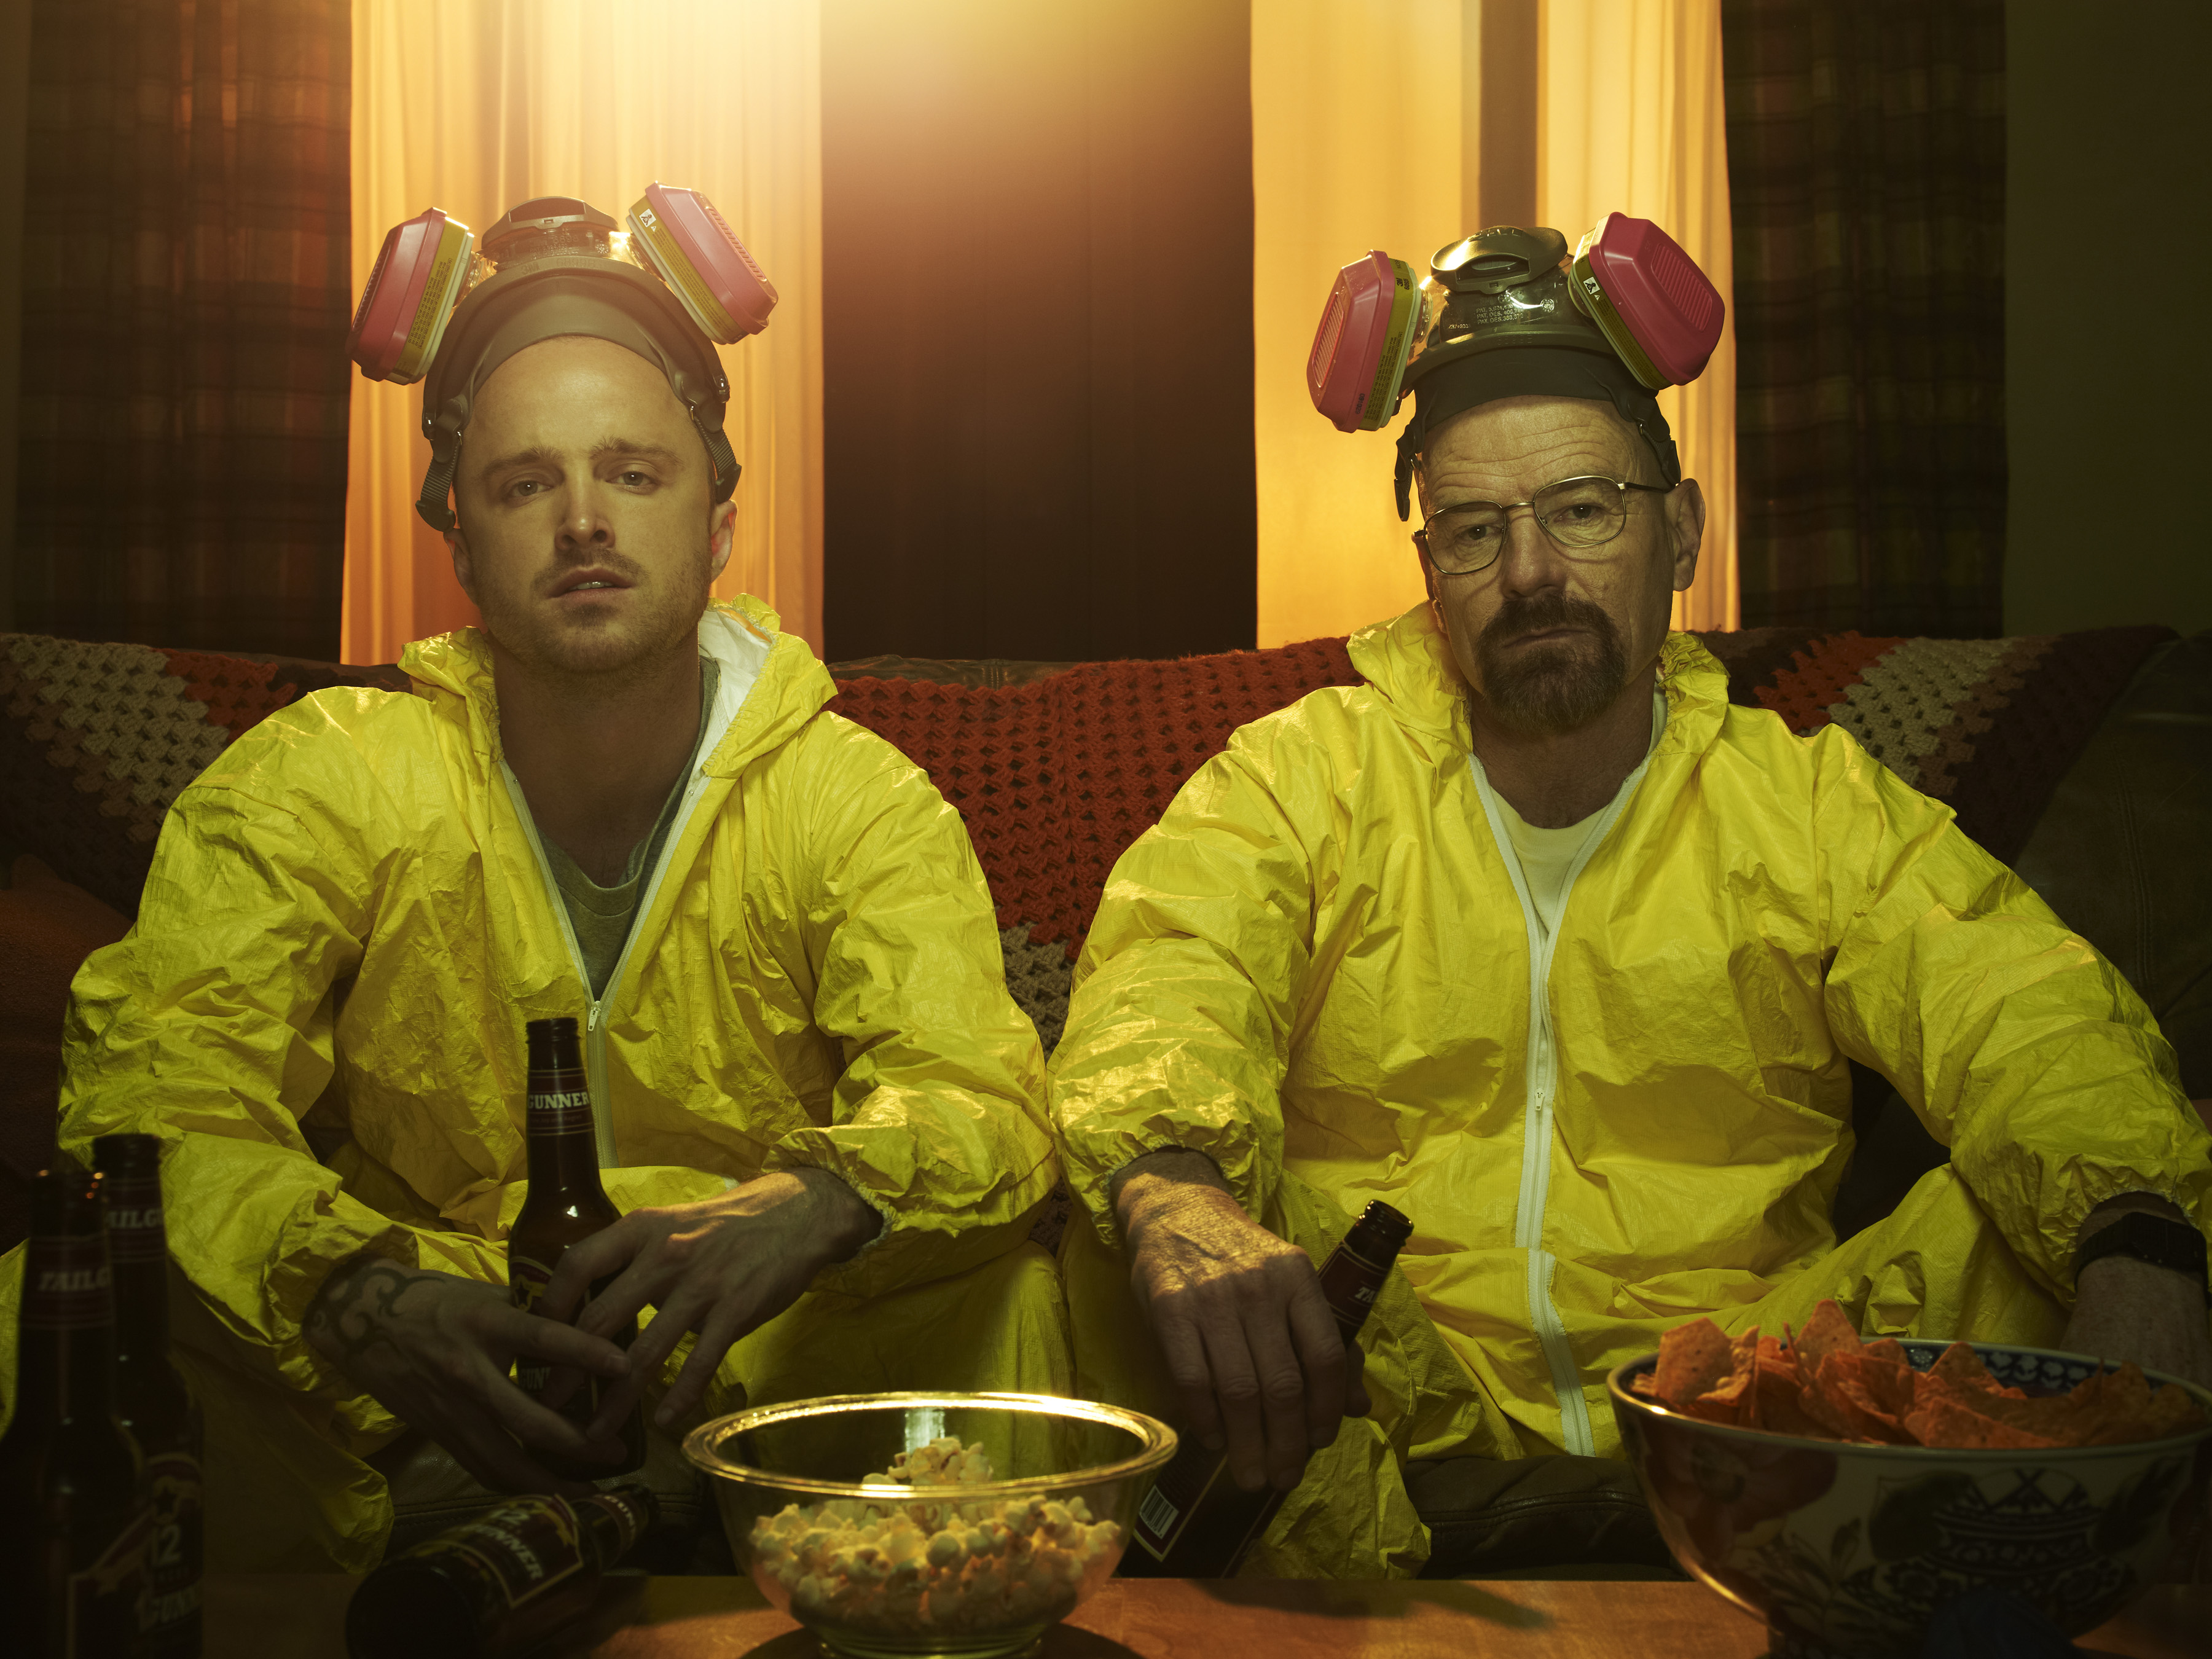 Aaron Paul and Bryan Cranston as Jesse and Walt in